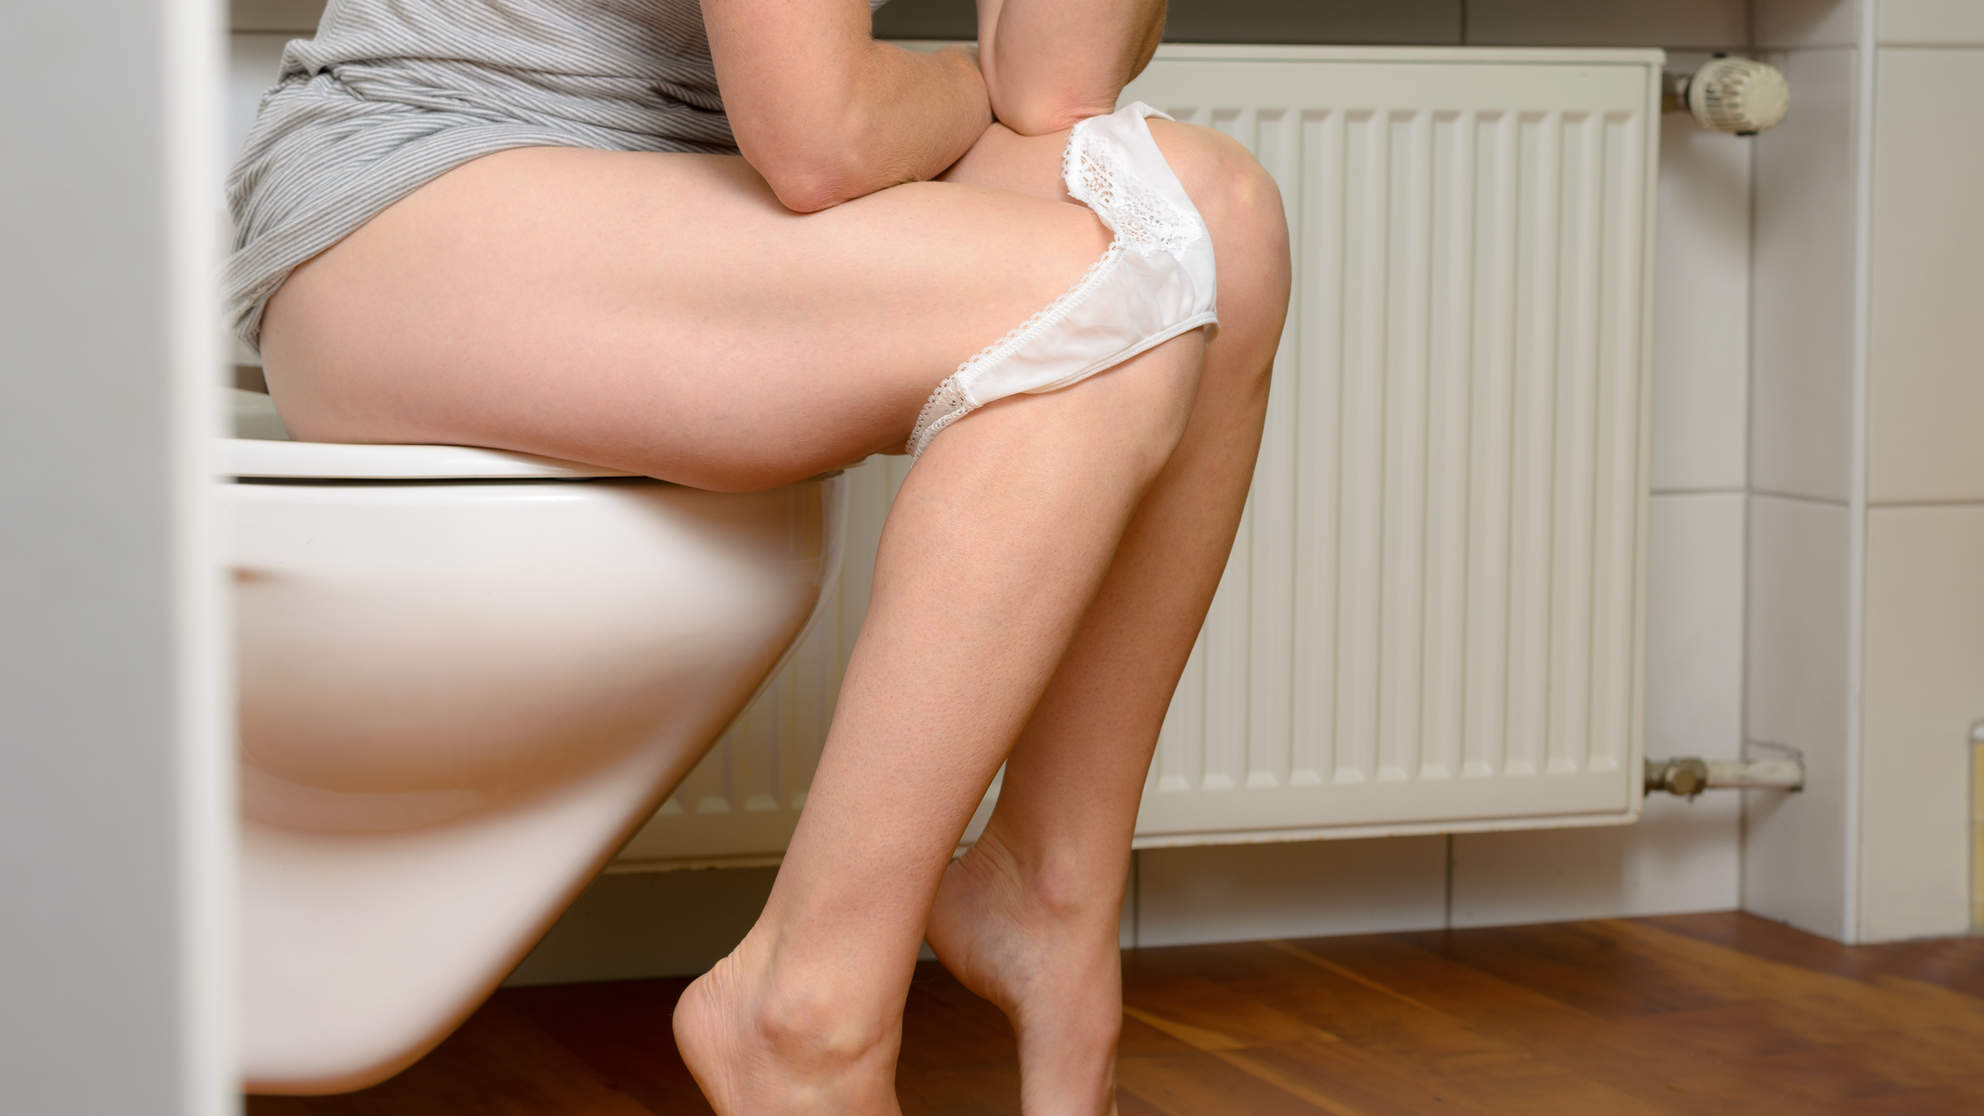 7 Reasons It Hurts to Pee—and What to Do About It